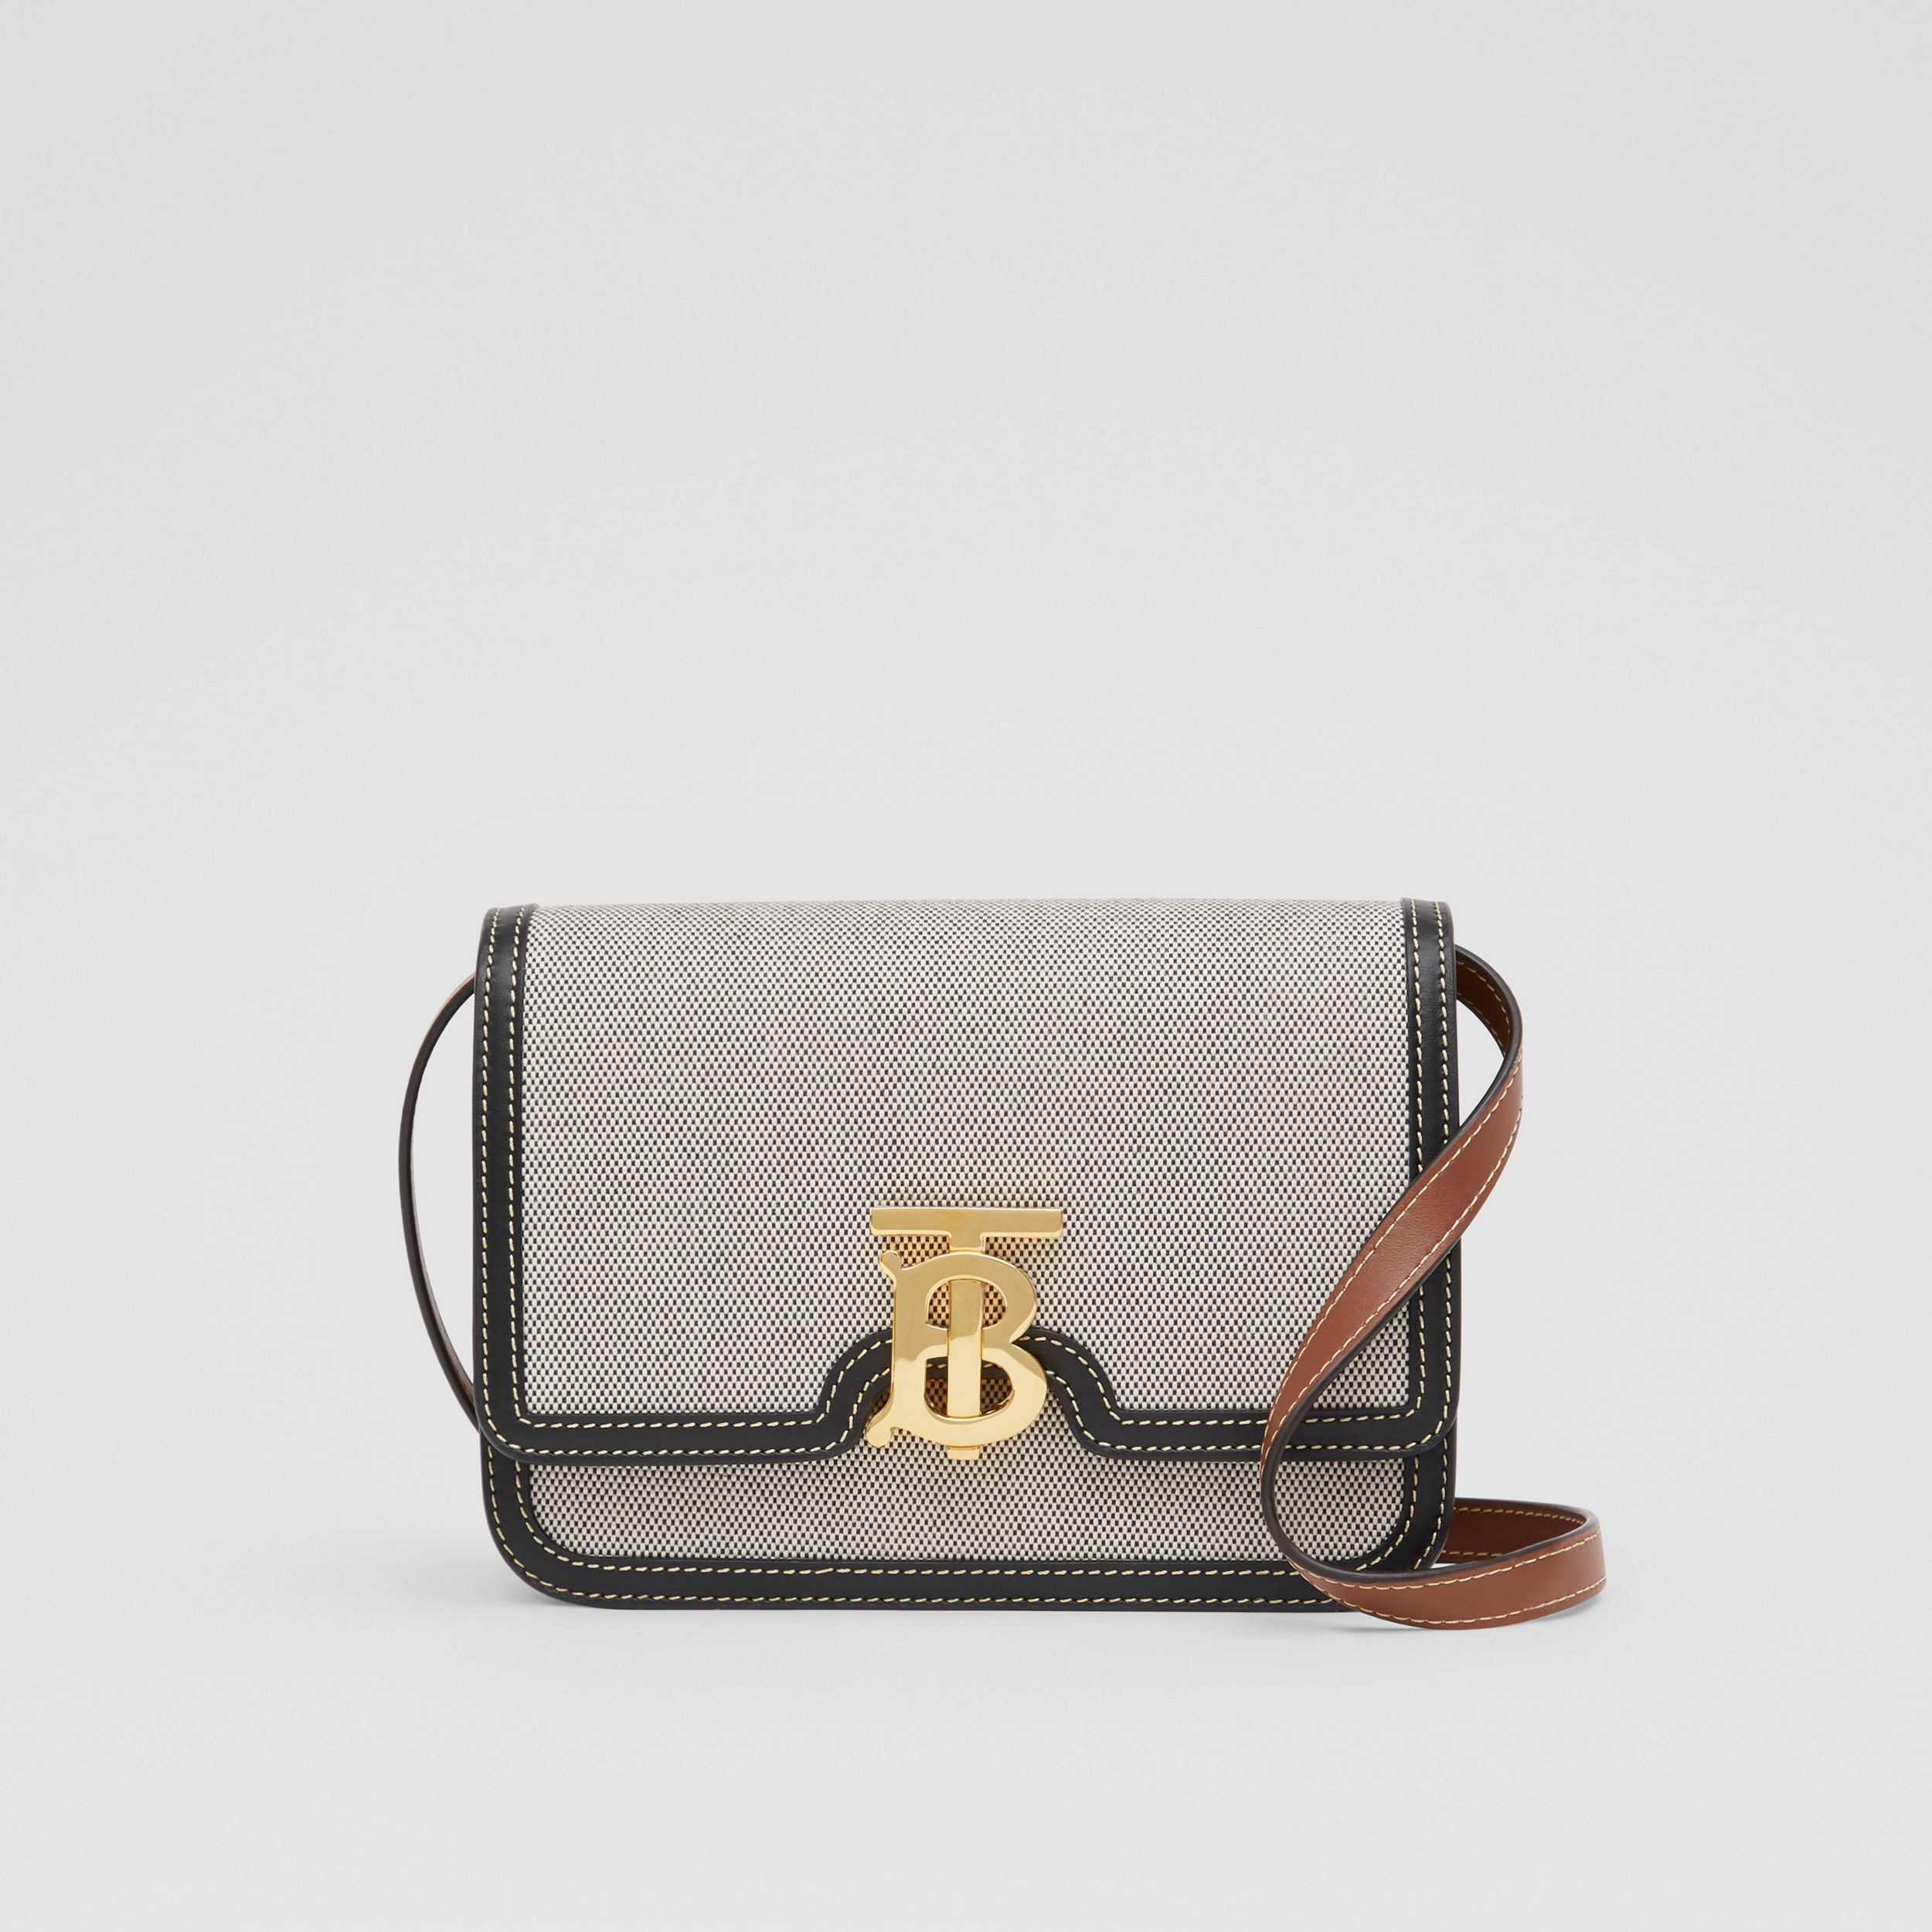 Small Tri-tone Canvas and Leather TB Bag in Black/tan - Women | Burberry United Kingdom - 1